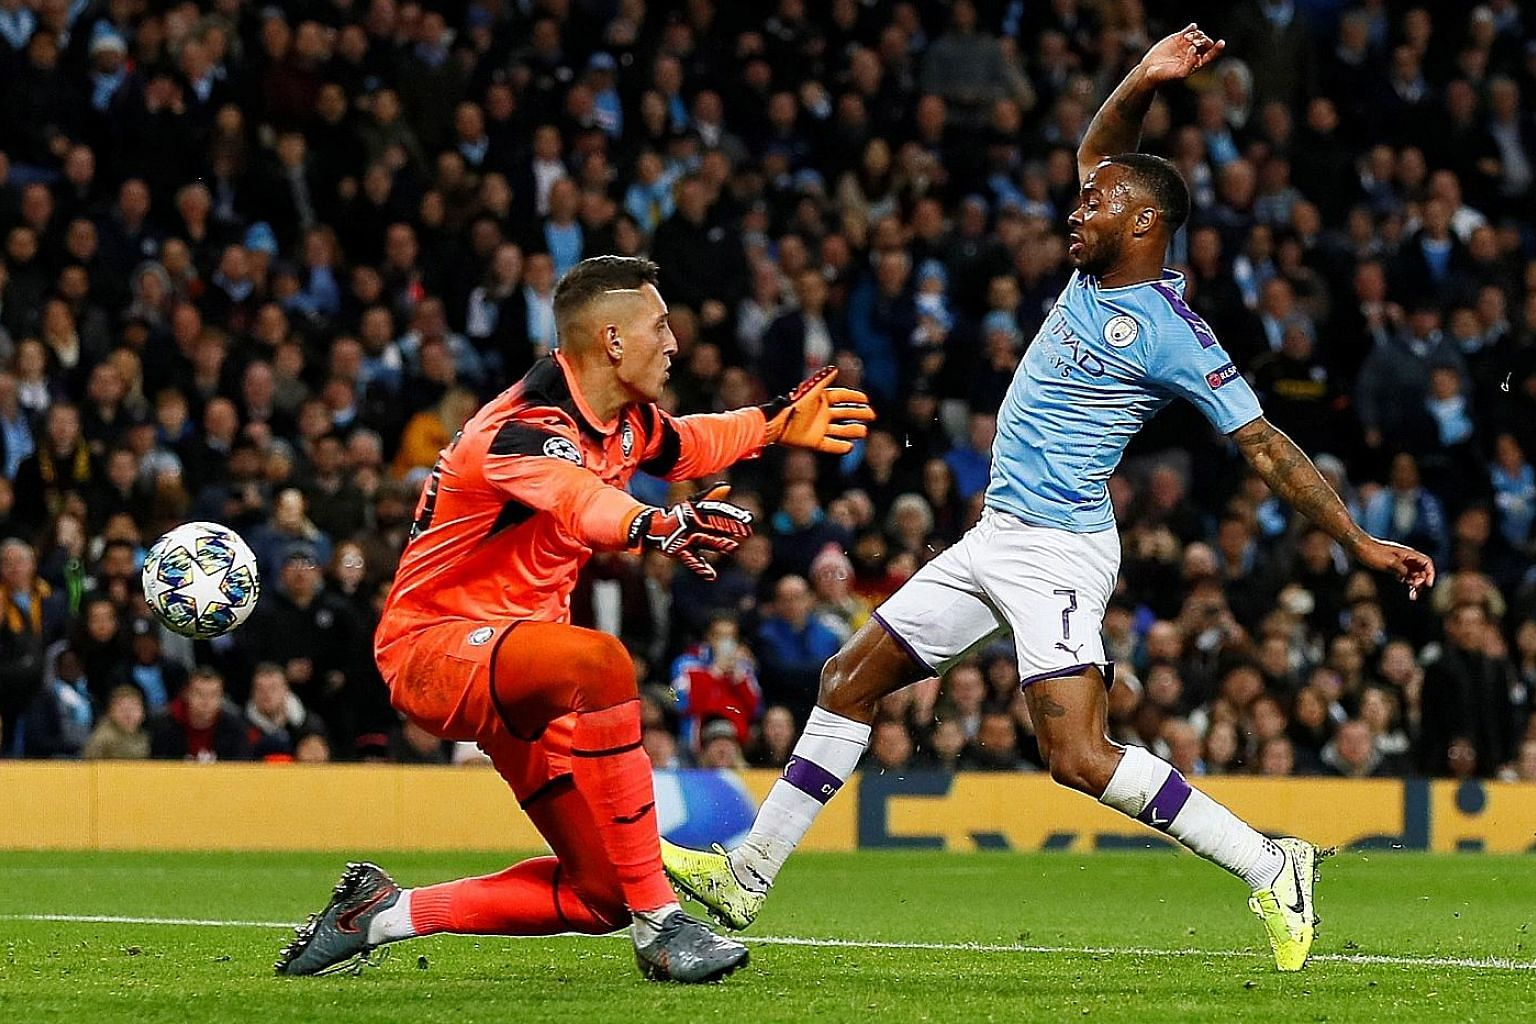 Raheem Sterling scoring Manchester City's fifth goal past Atalanta goalkeeper Pierluigi Gollini to complete his hat-trick in the Champions League game at the Etihad Stadium on Tuesday night. PHOTO: REUTERS